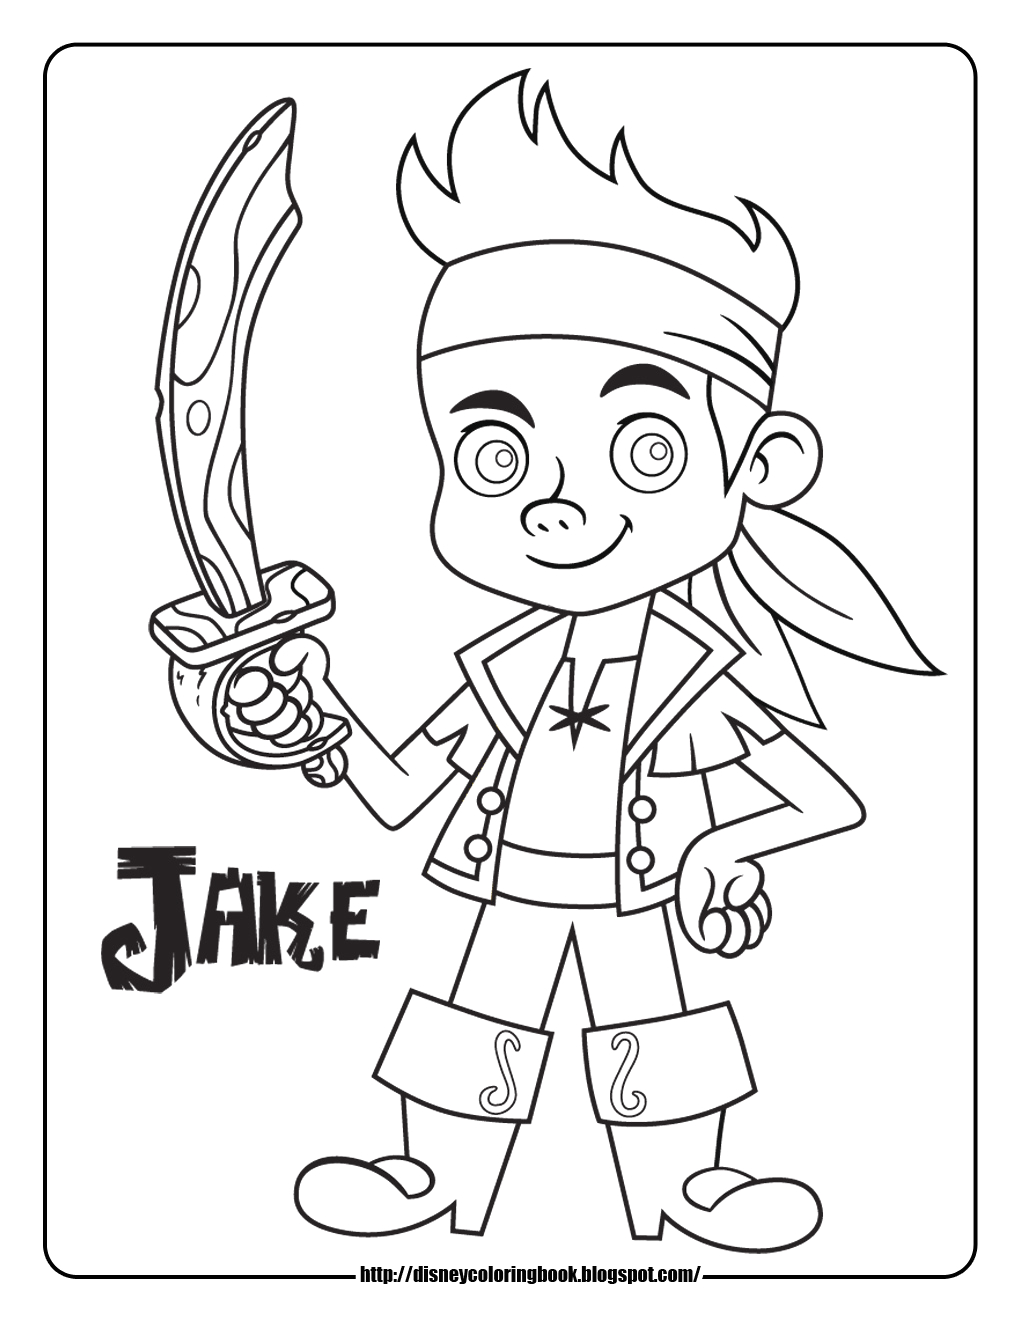 Jake and the Neverland Pirates Coloring Pages Pdf Jake and the Neverland Pirates 1 Free Disney Coloring Sheets